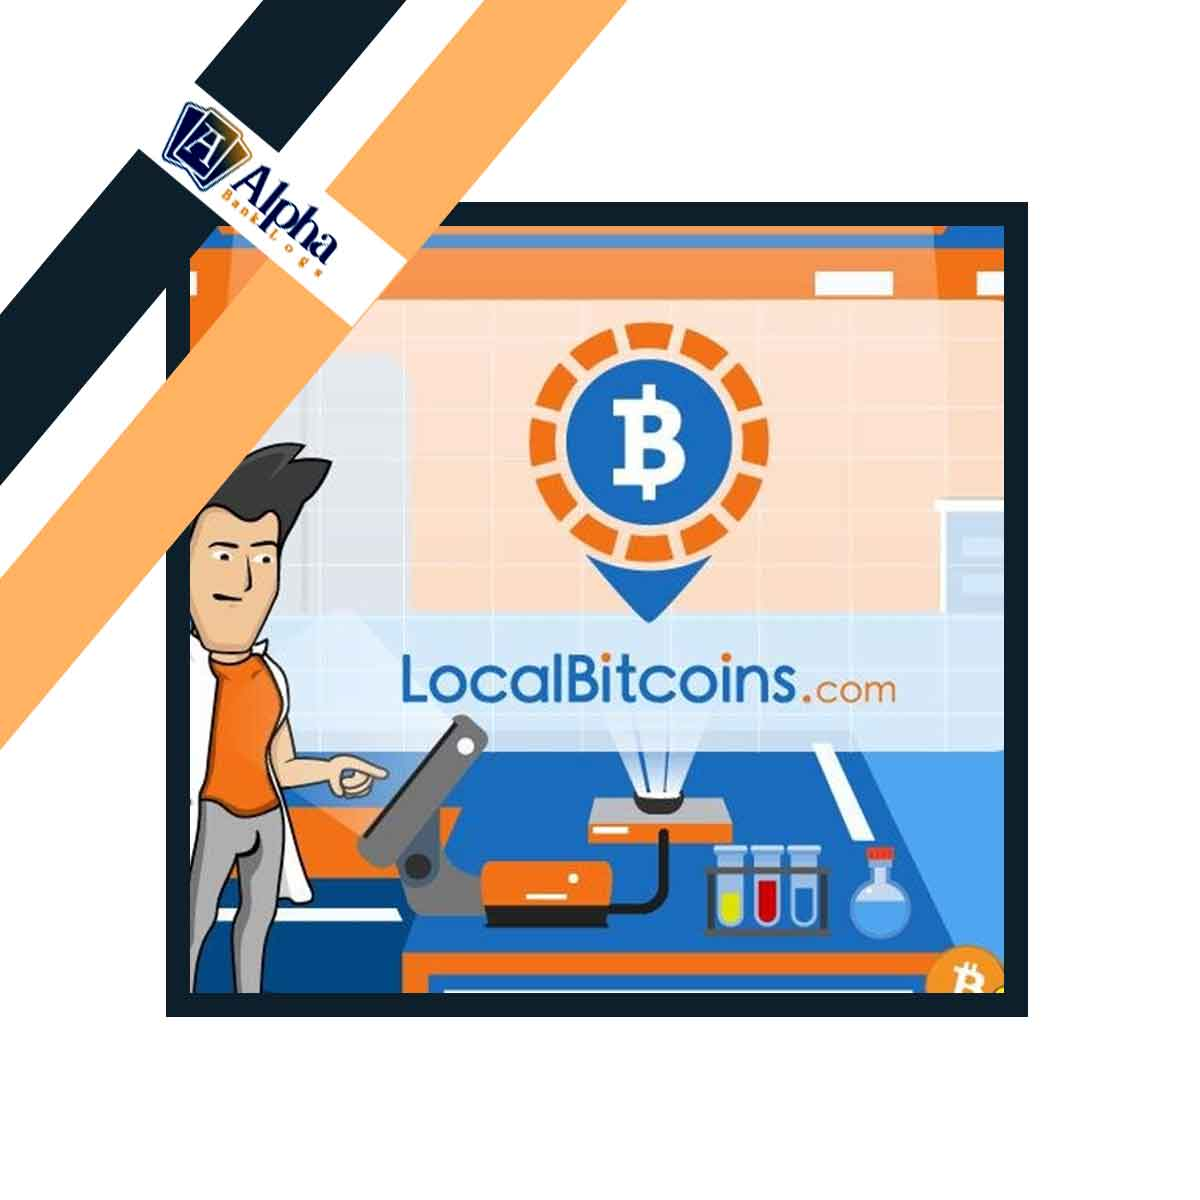 USA Tier 1 LOCALBITCOIN + Email Access + Number Access